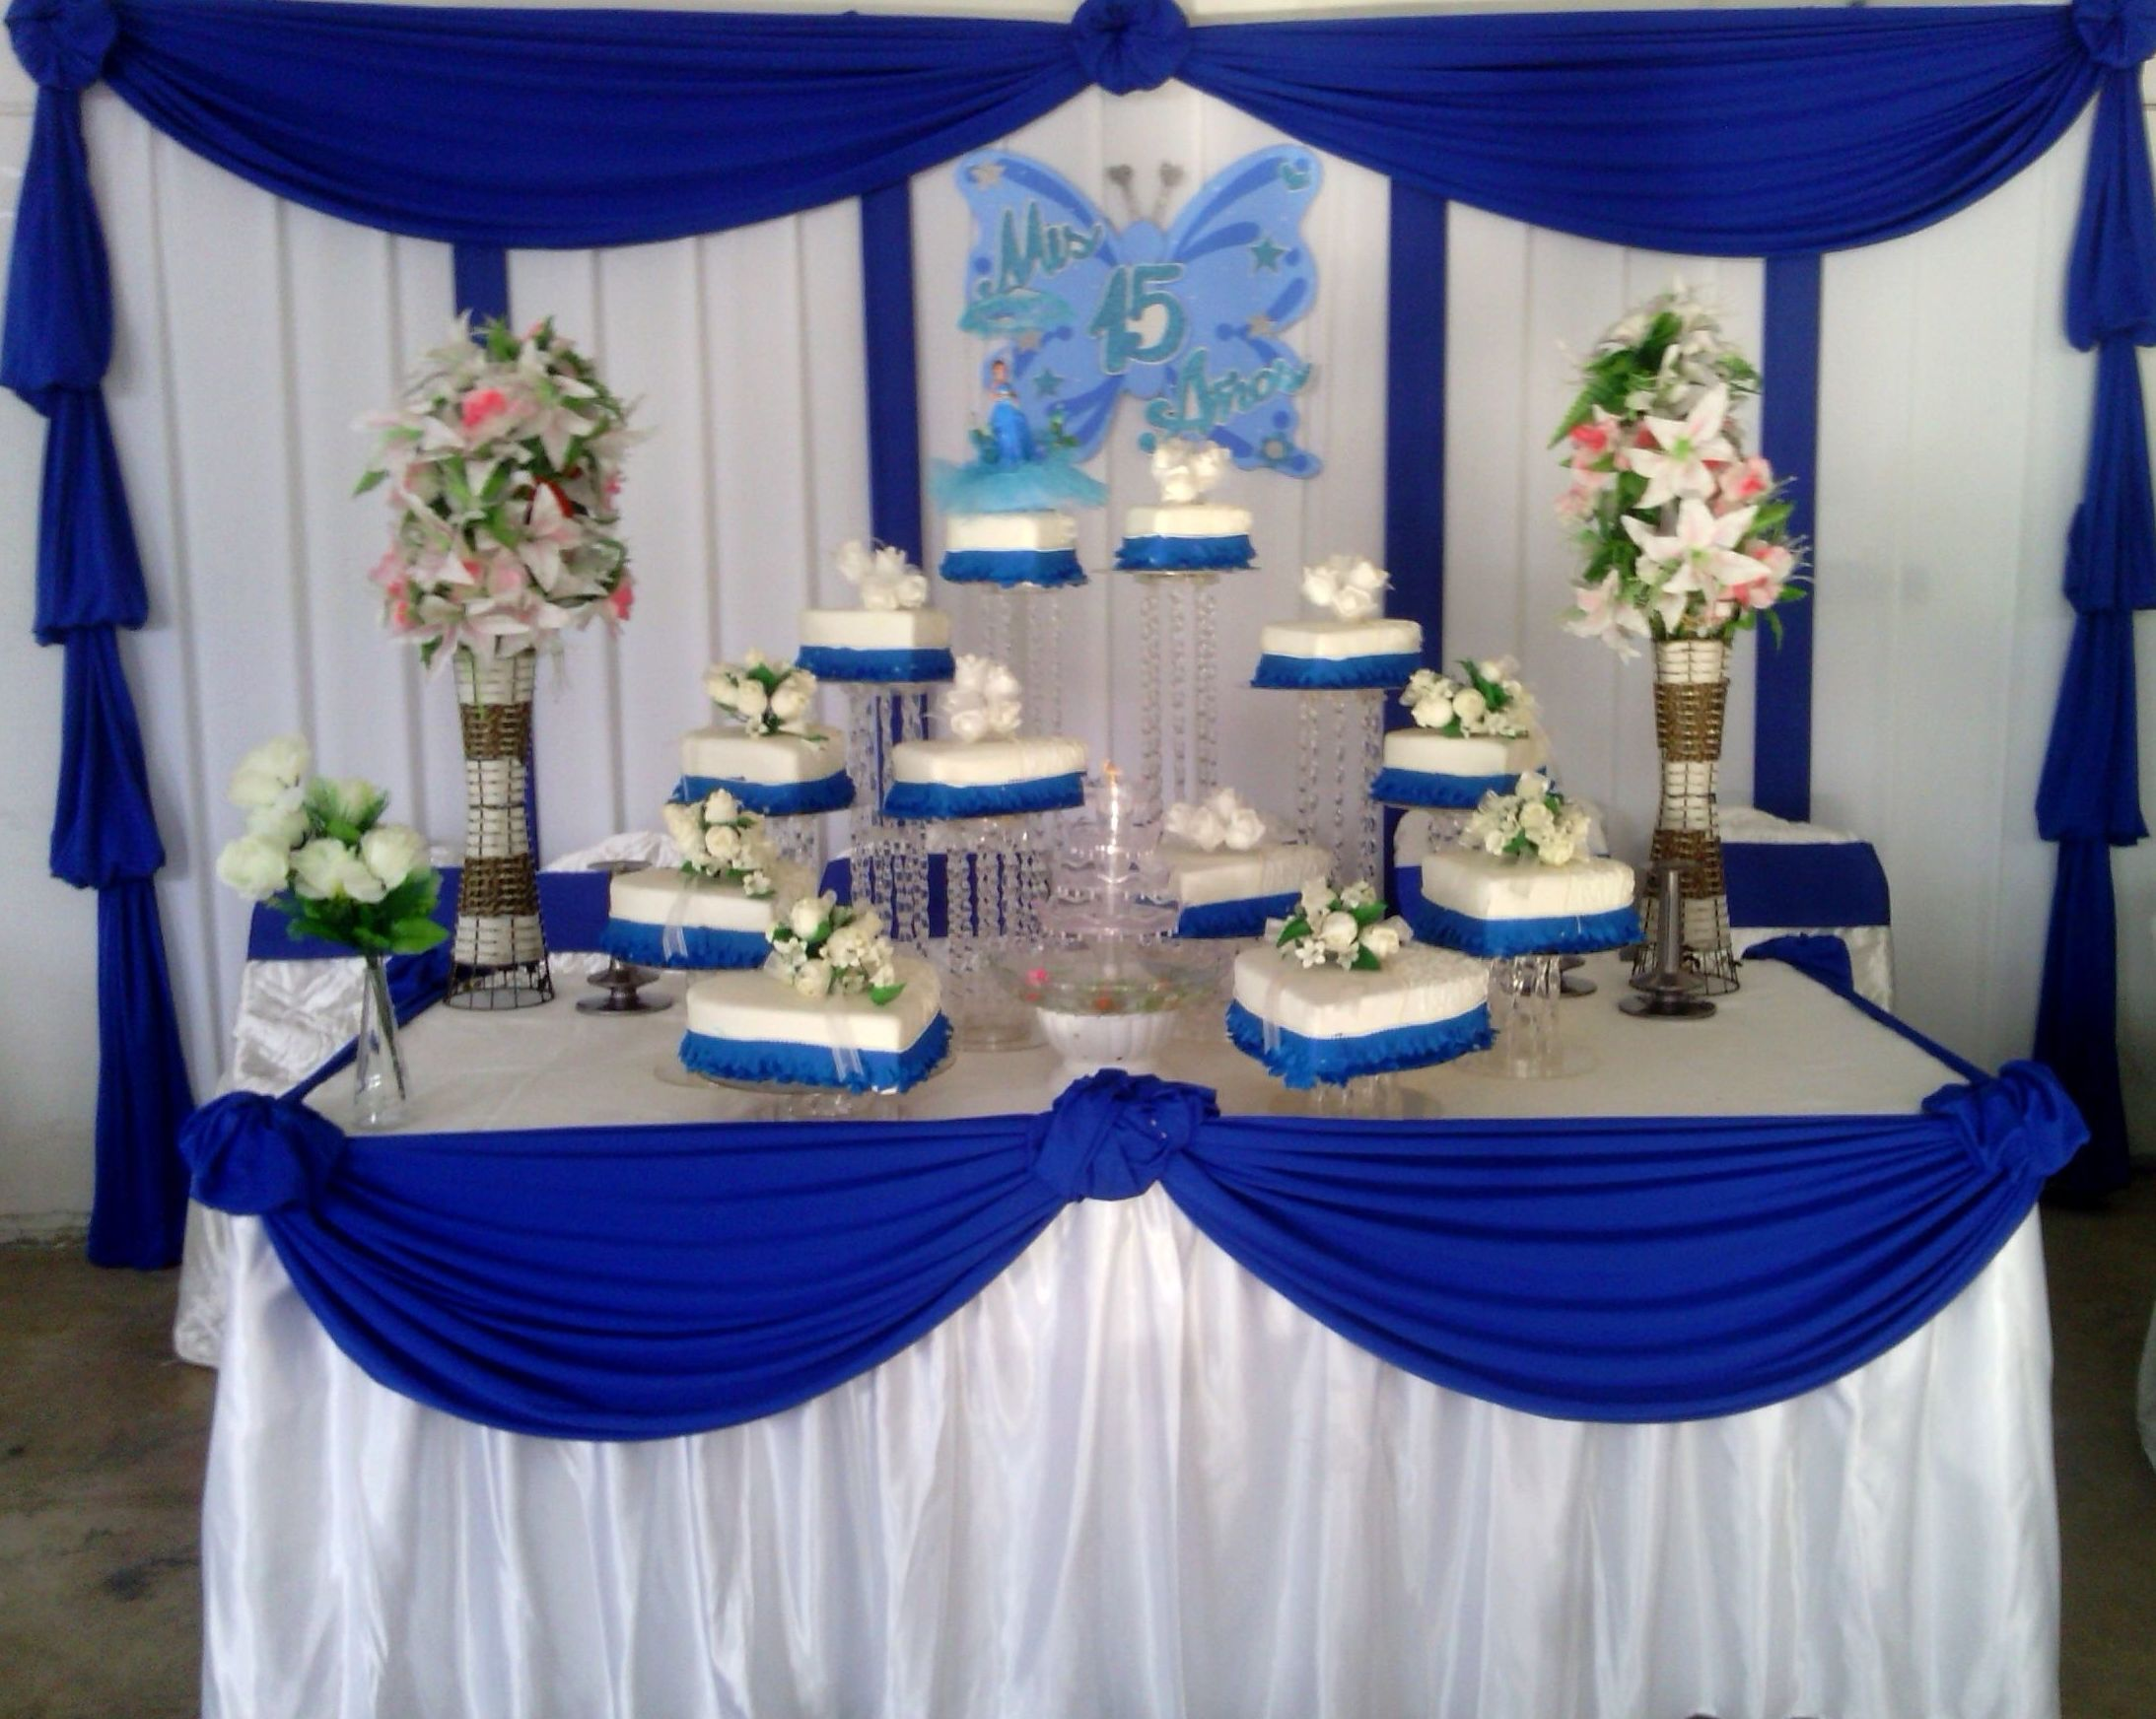 Decoraciones en color azul especial para quince a os - Decoracion en salones ...